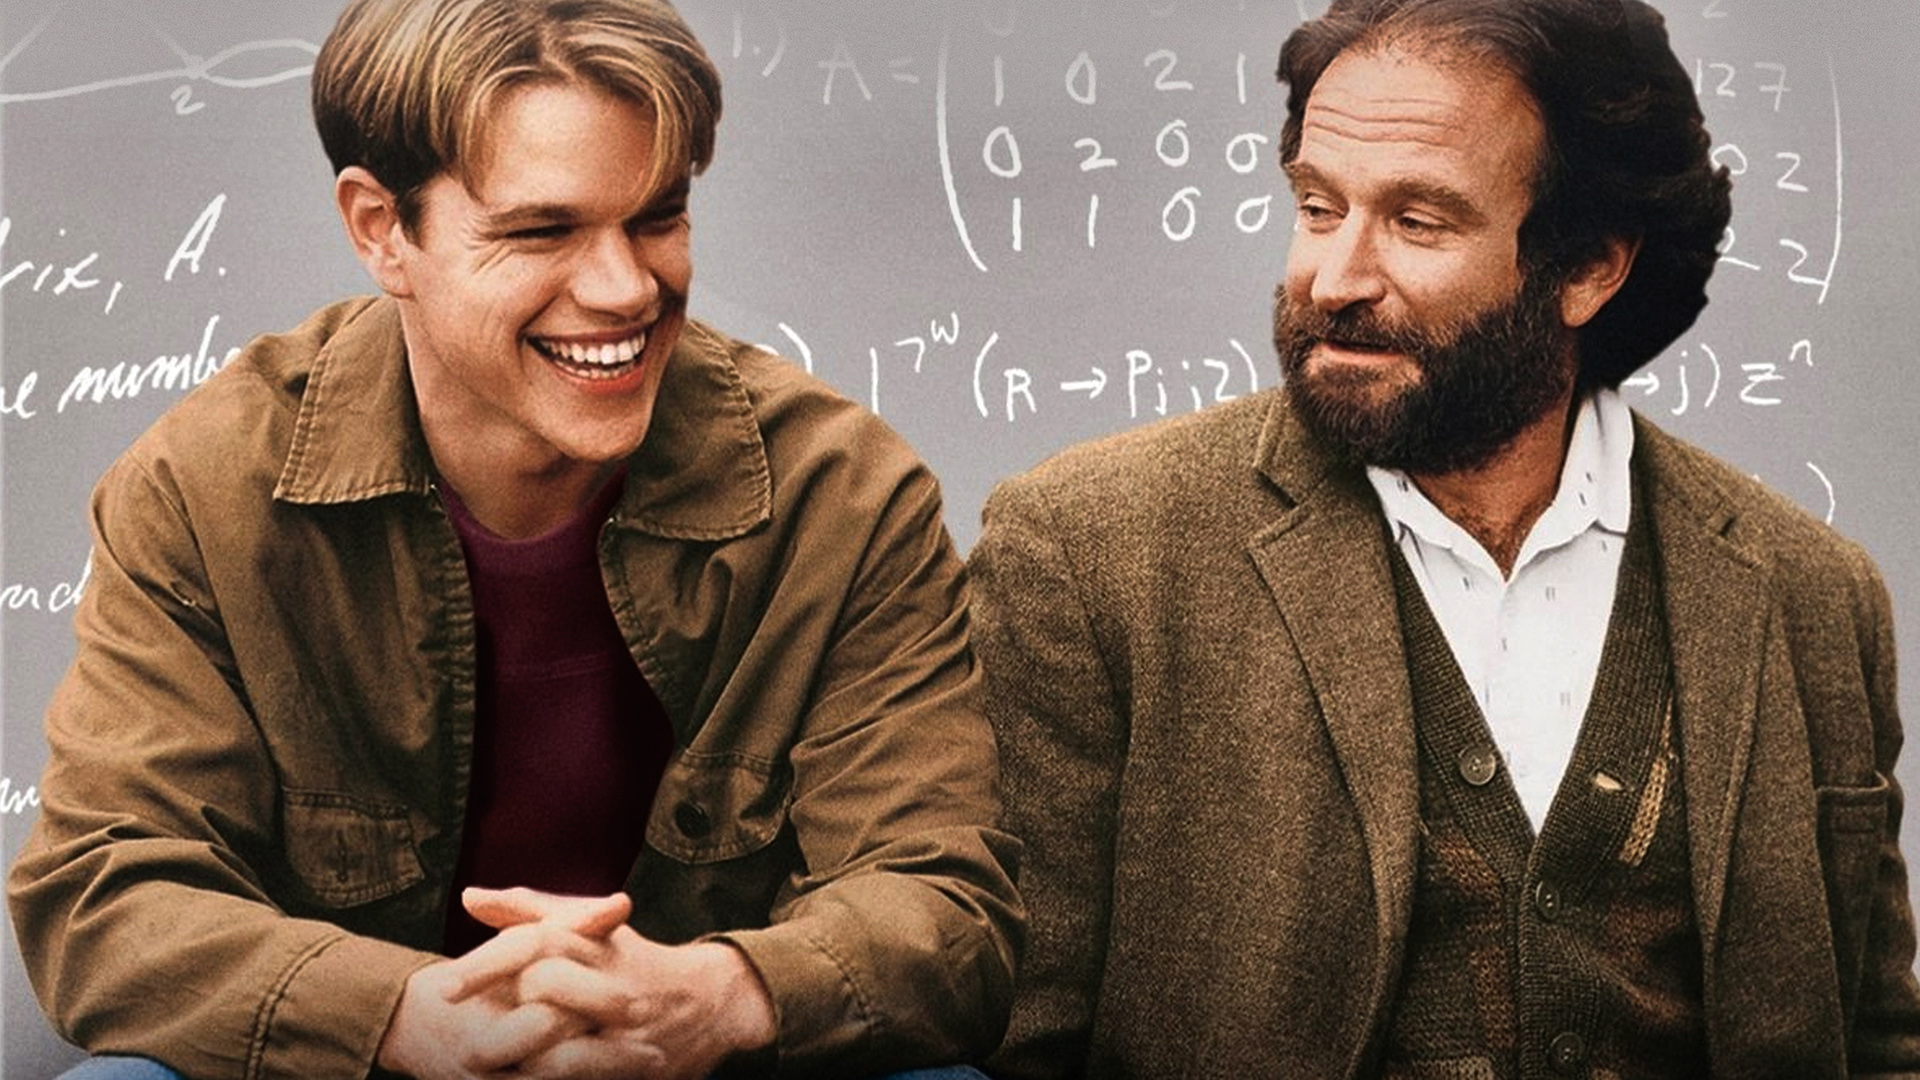 Mentor Student Relationships in Movies